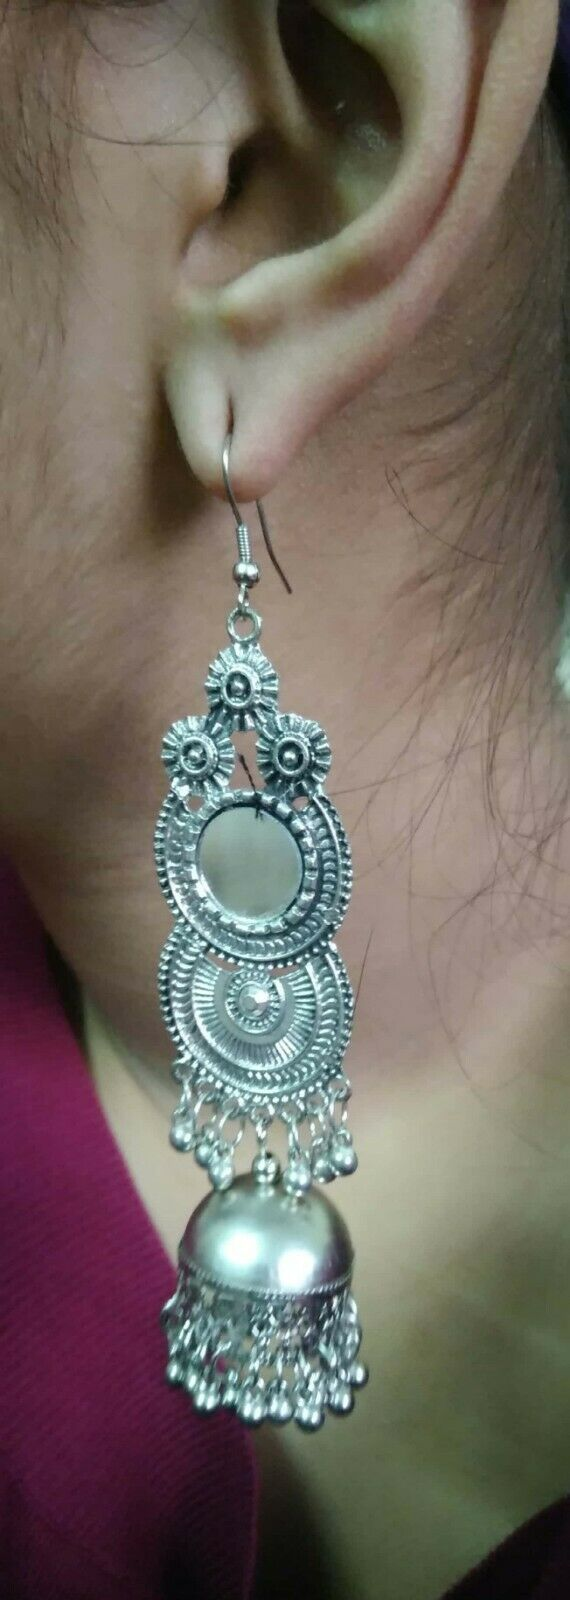 Bollywood Antique Indian Kashmir Jhumki Mughal Jhumka Silver Plated Oxidized